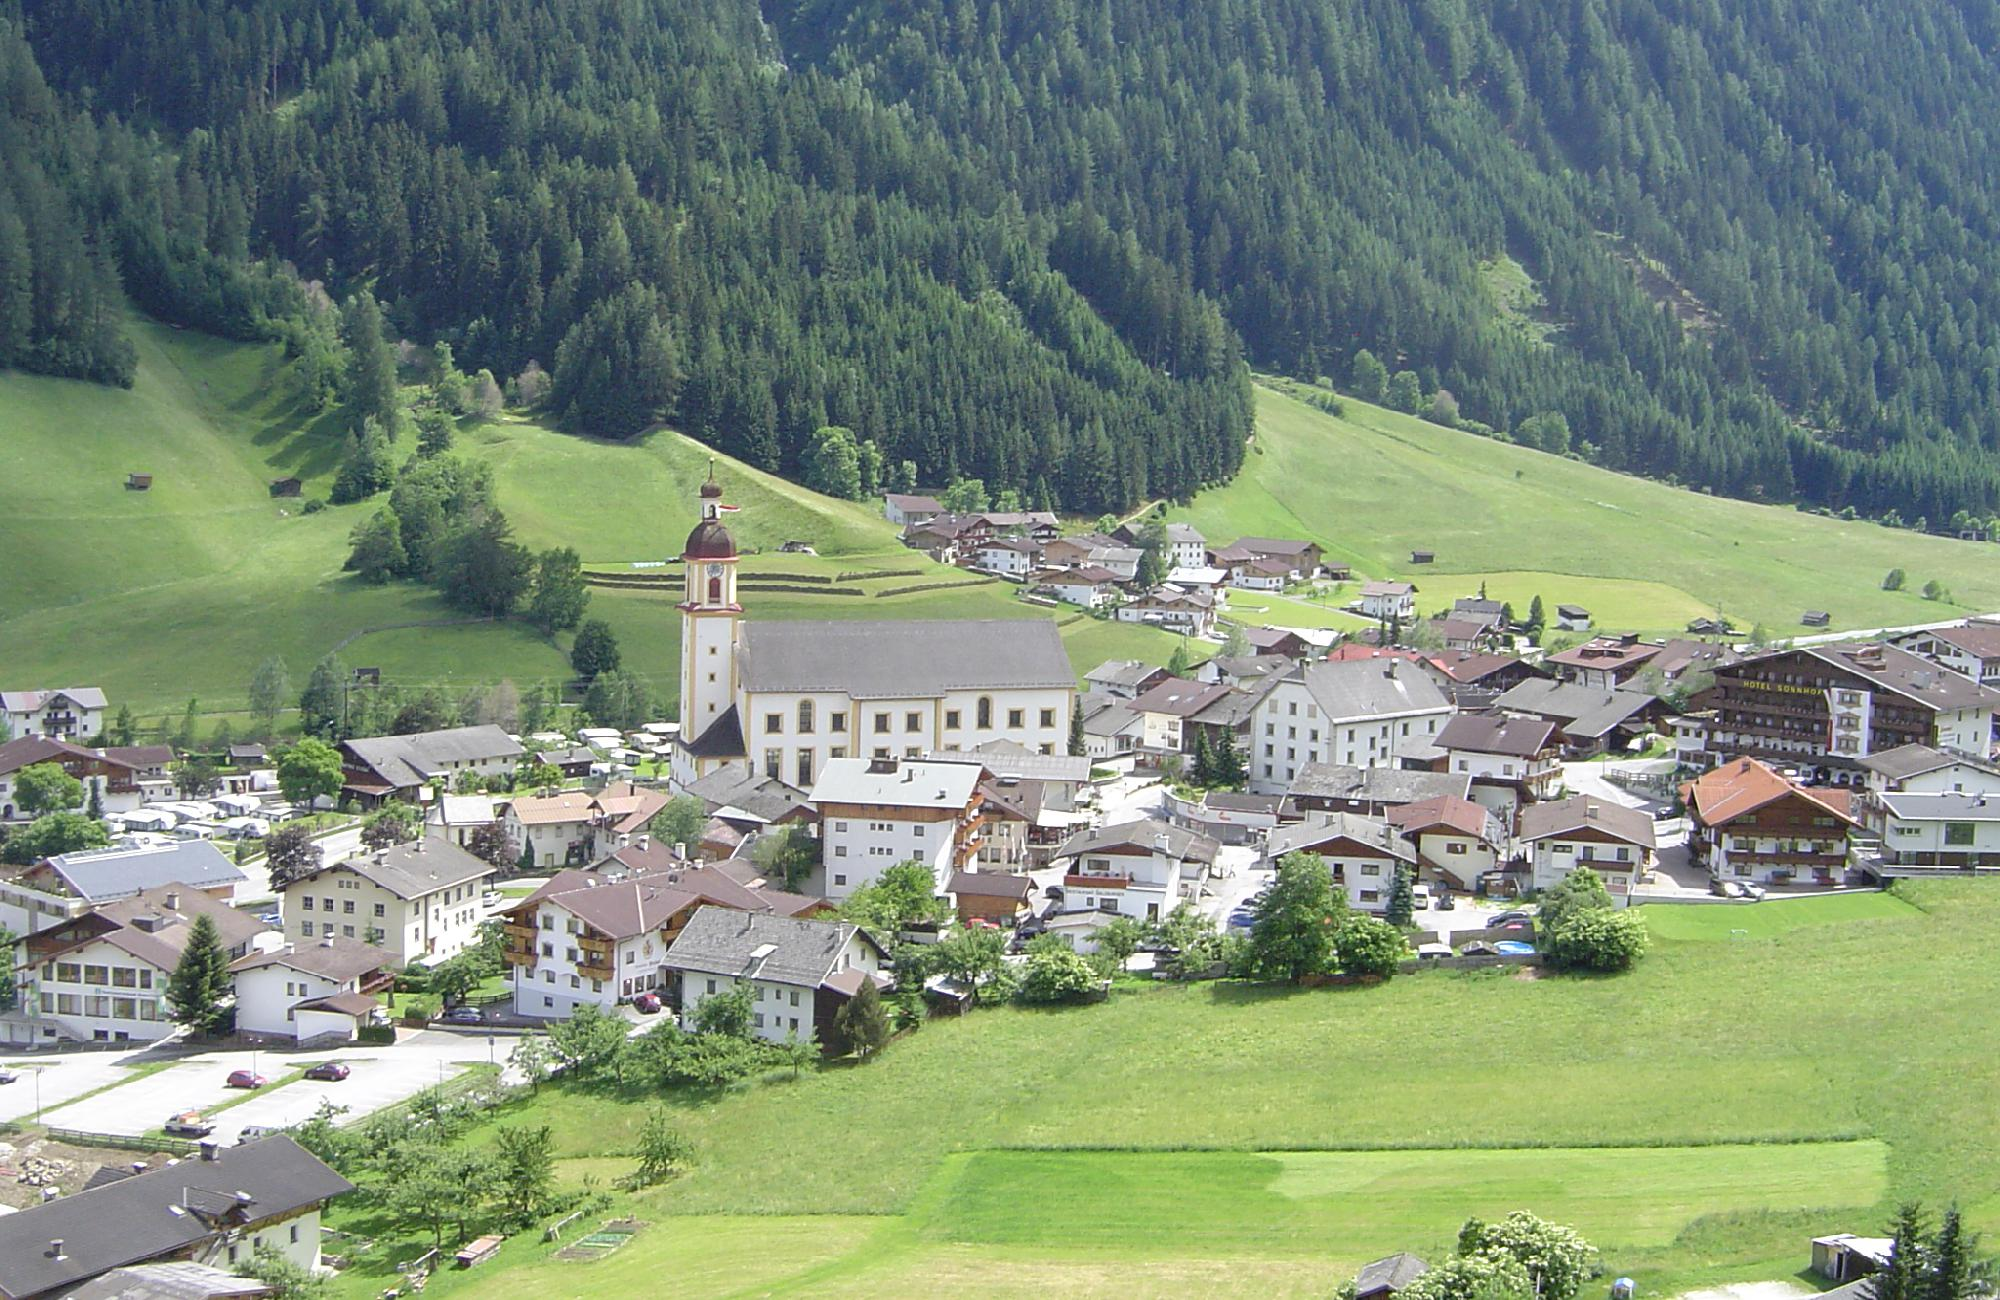 Immobilien - Hotel in Neustift im Stubaital, Neustift im Stubaital